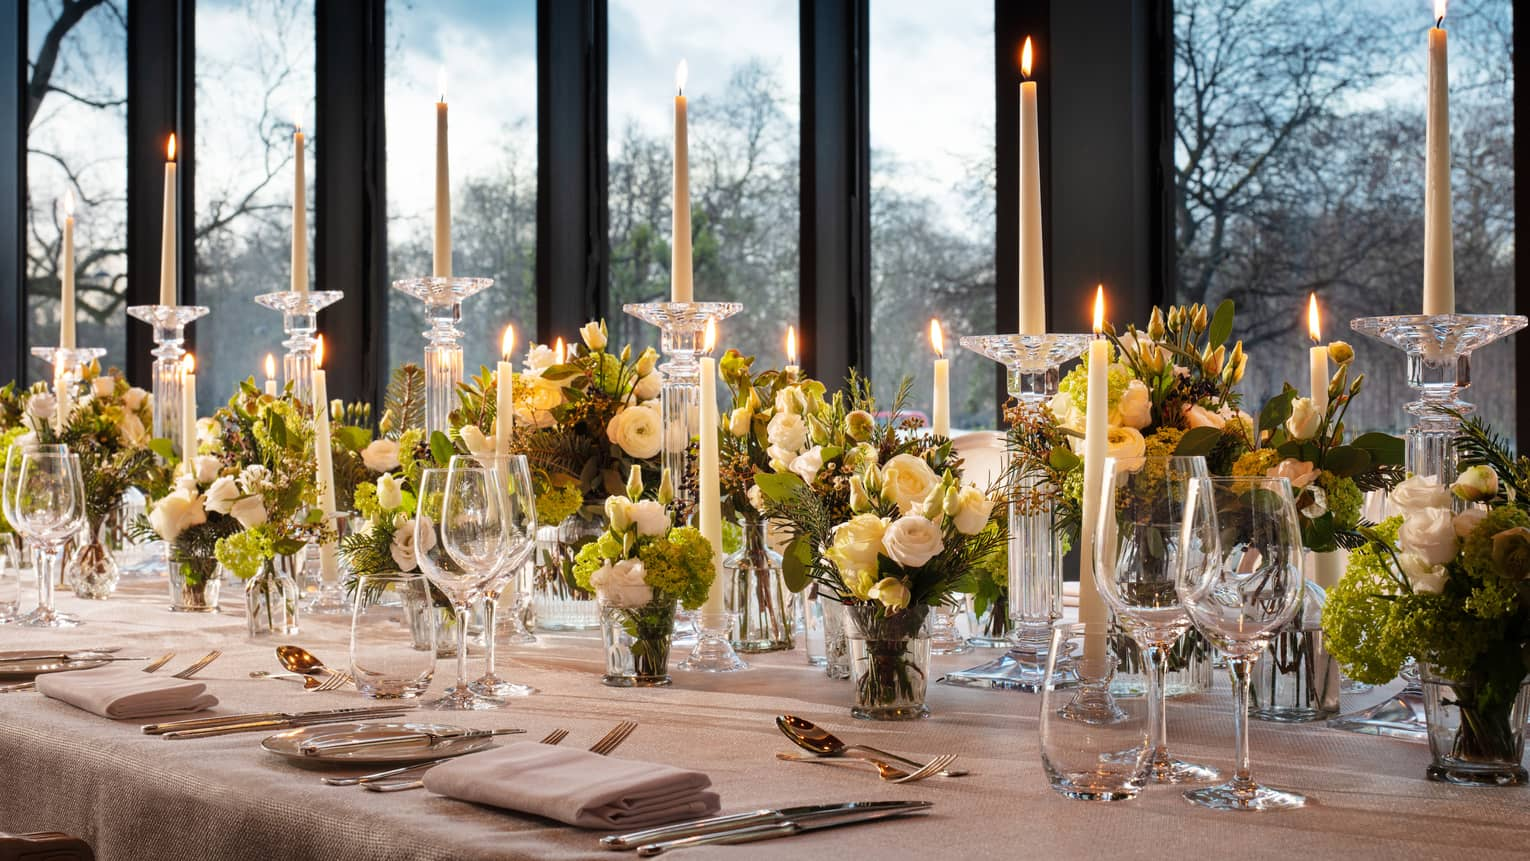 Close up shot of meeting room table set with tall tapered candles and green floral arrangements against a window backdrop